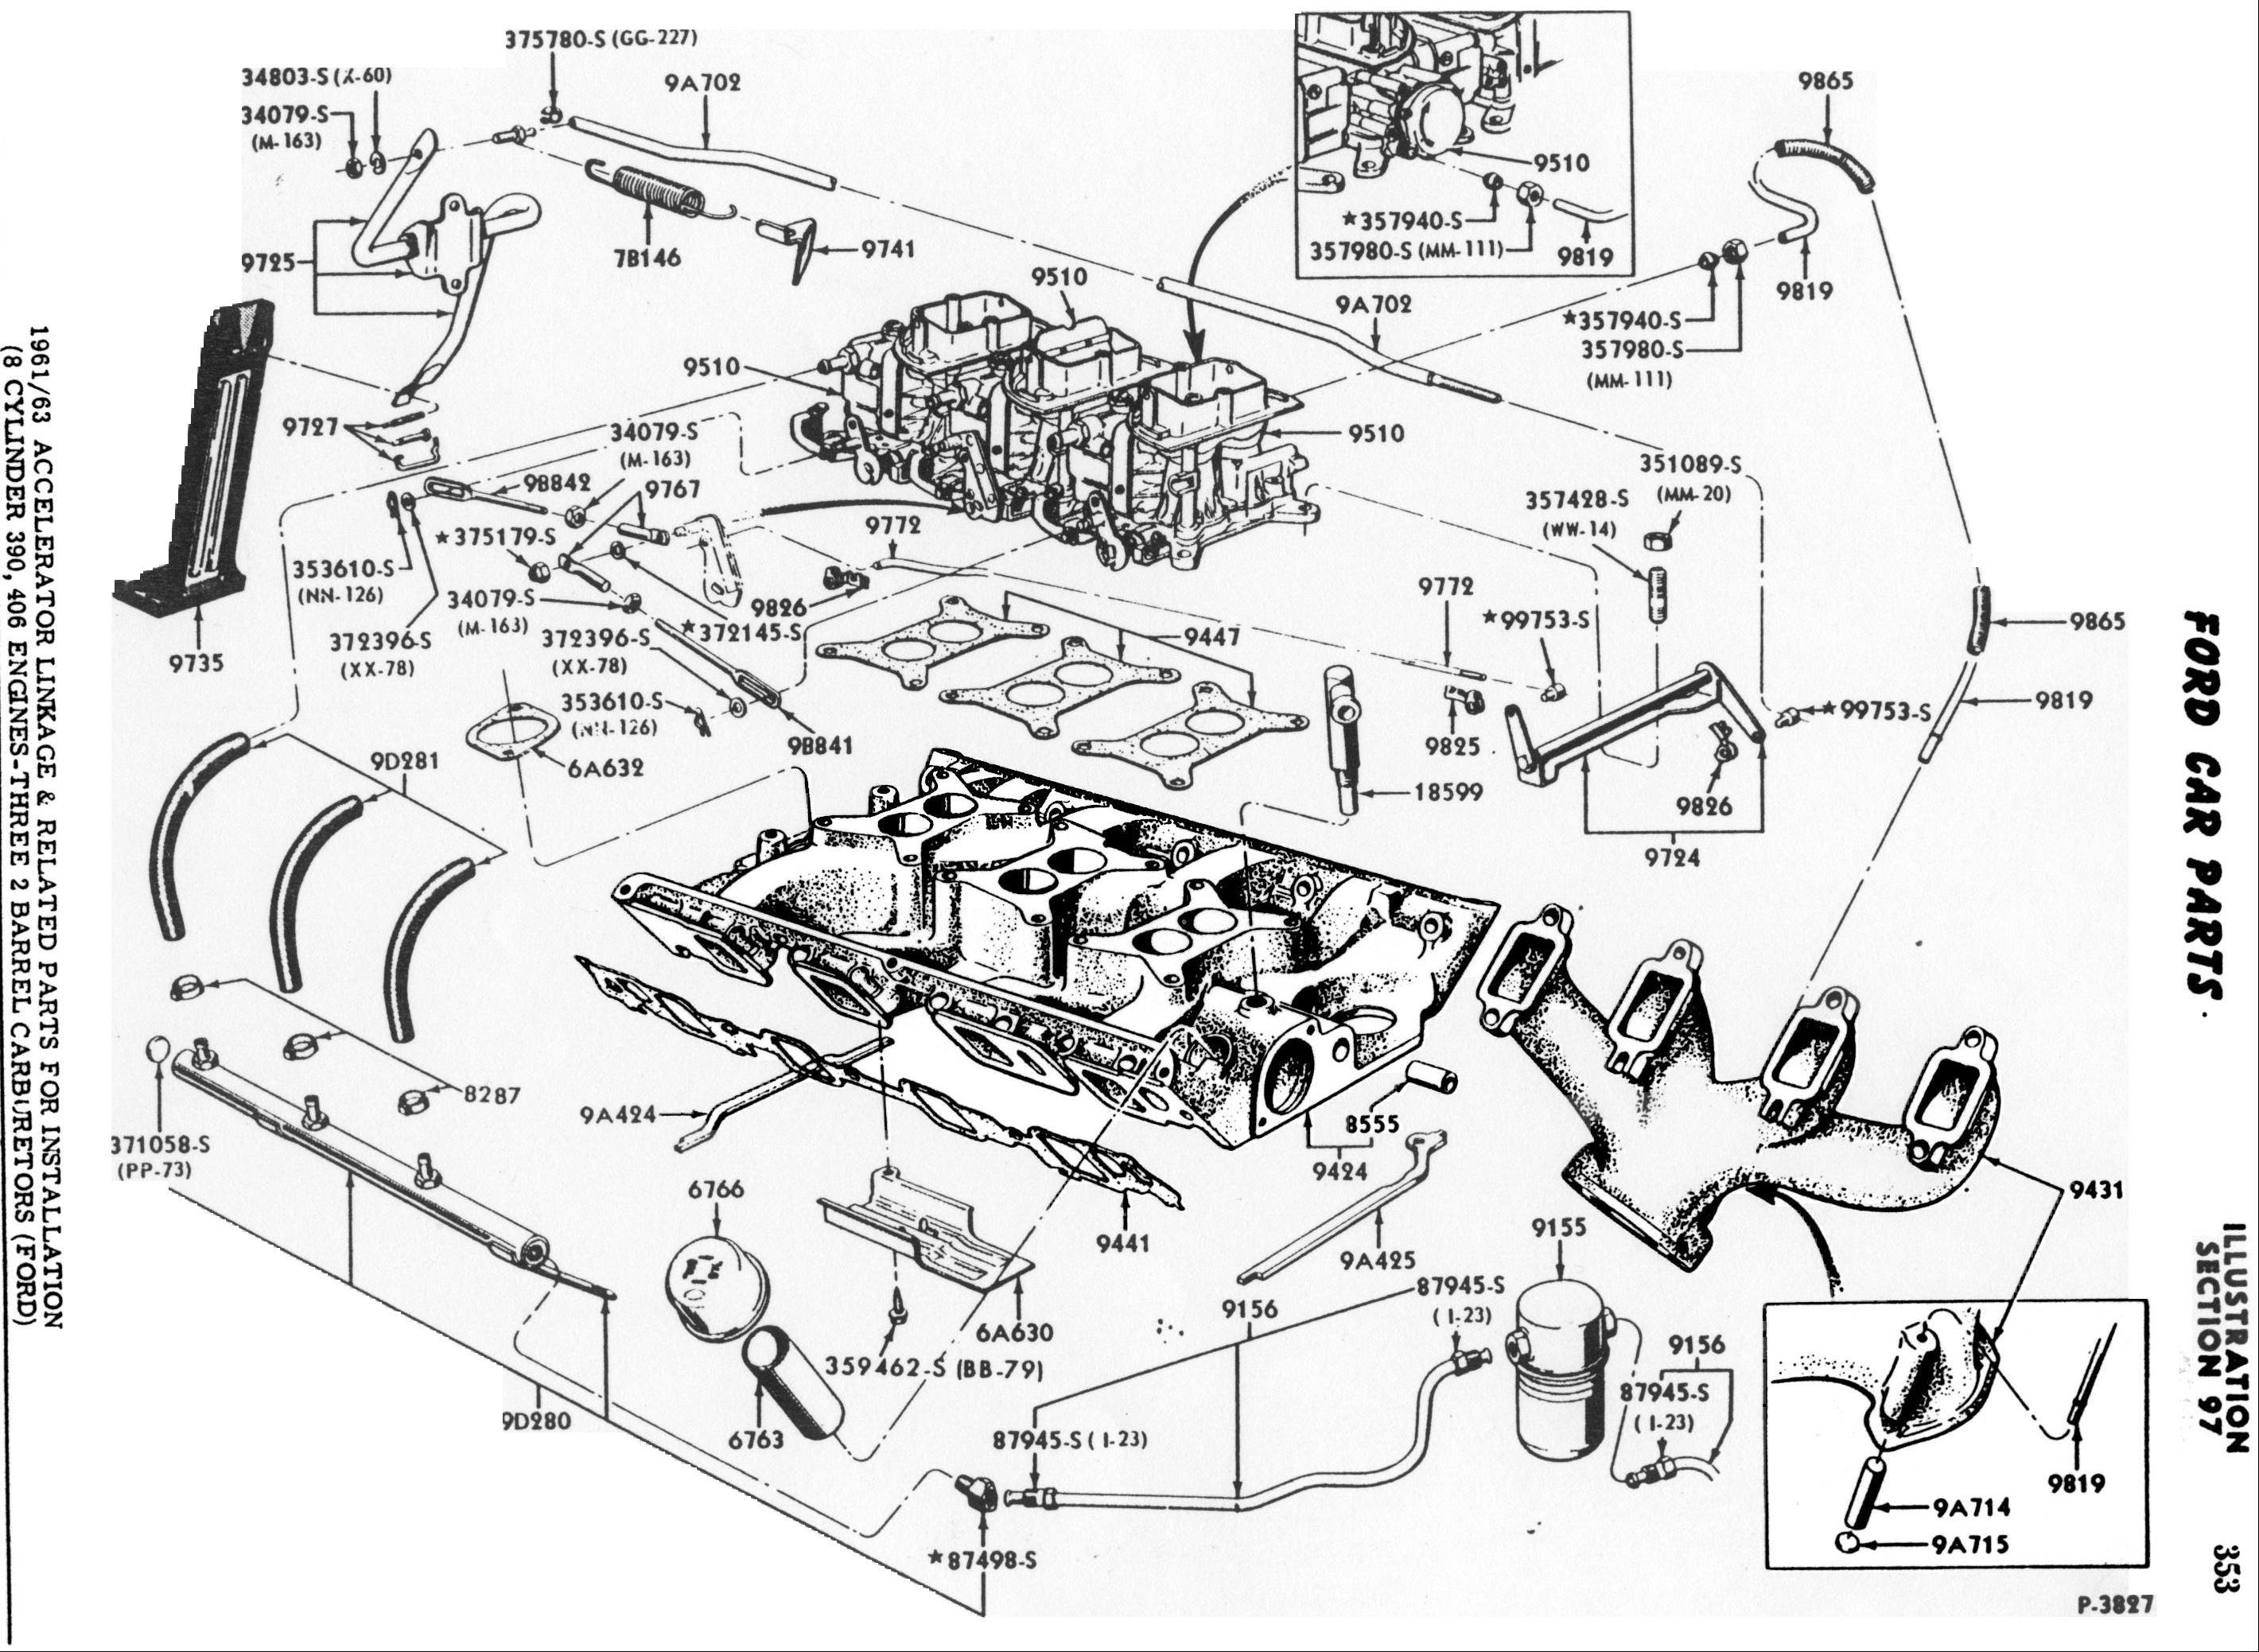 Ford Maverick Wiring Diagram Library For 1975 1972 Auto